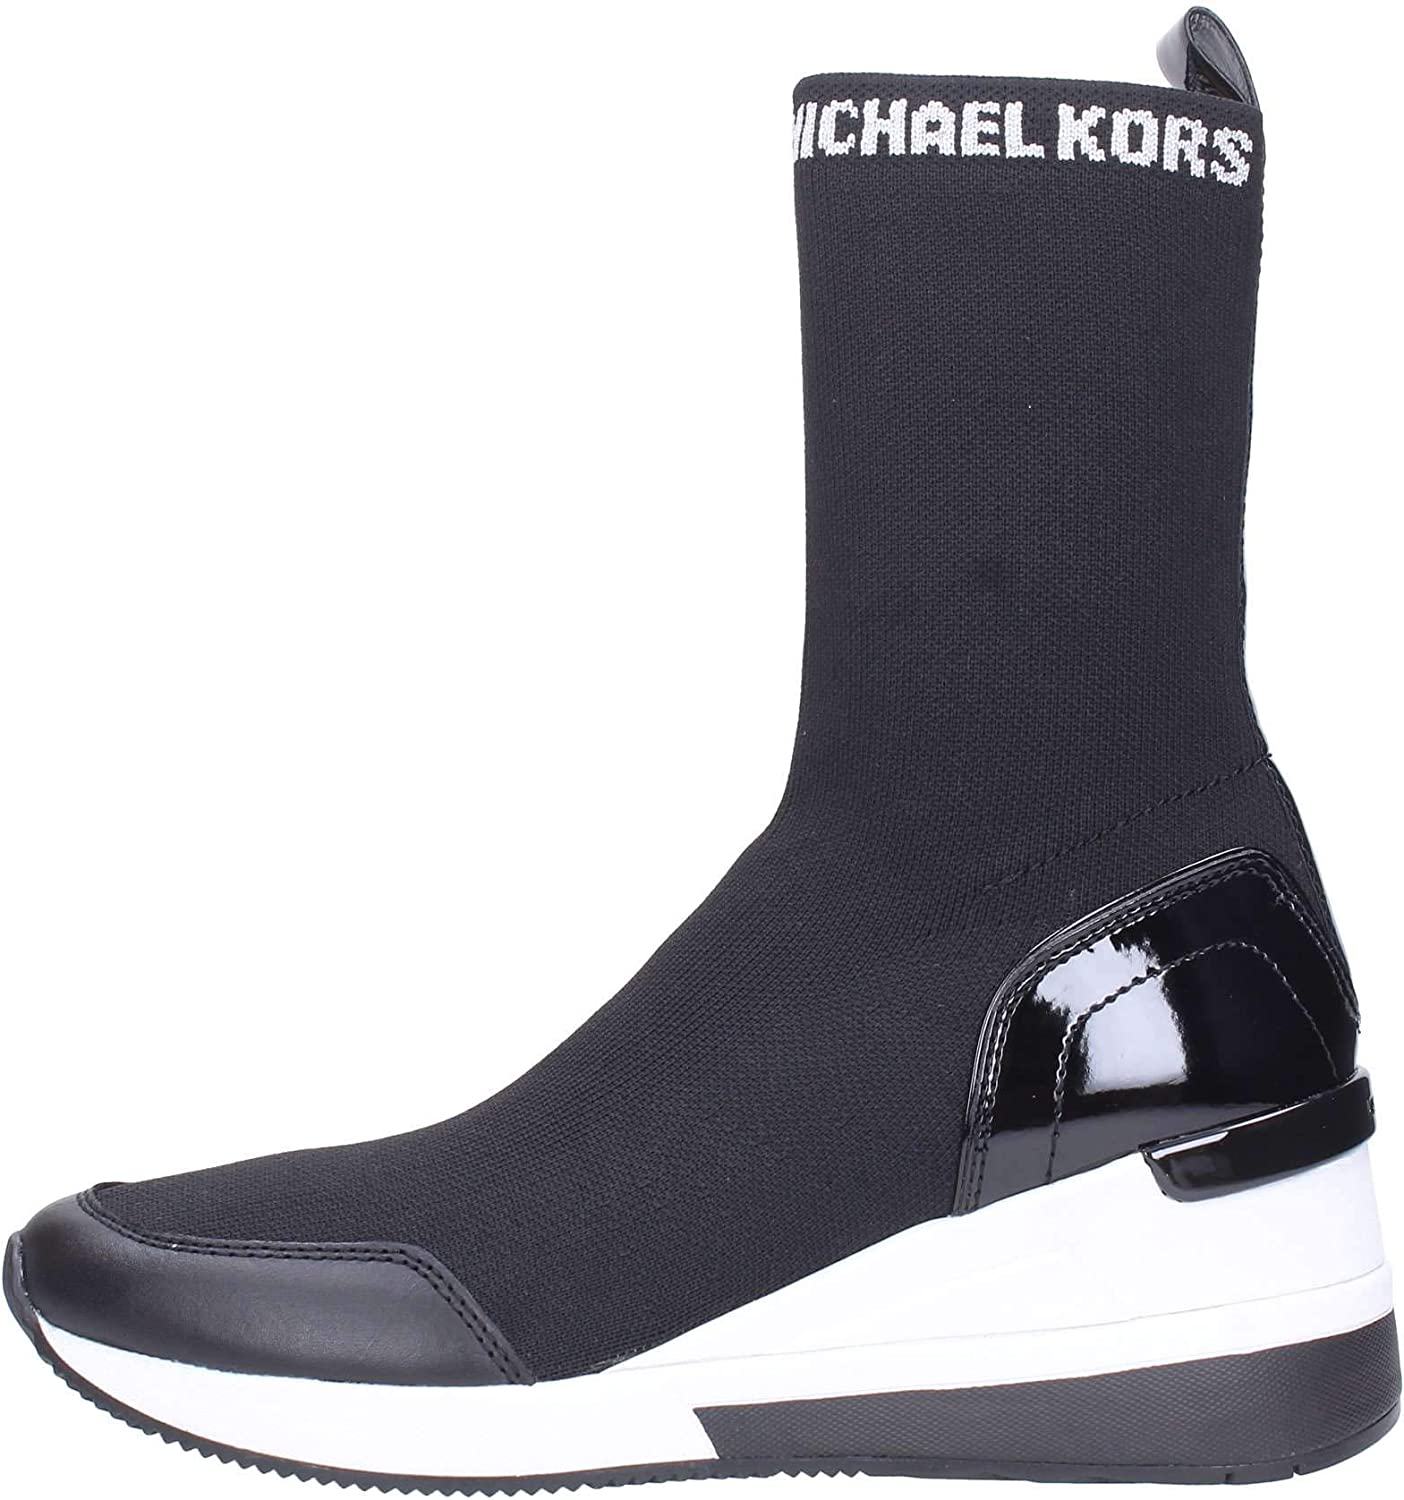 Michael Kors Grover Knit Bootie Boots